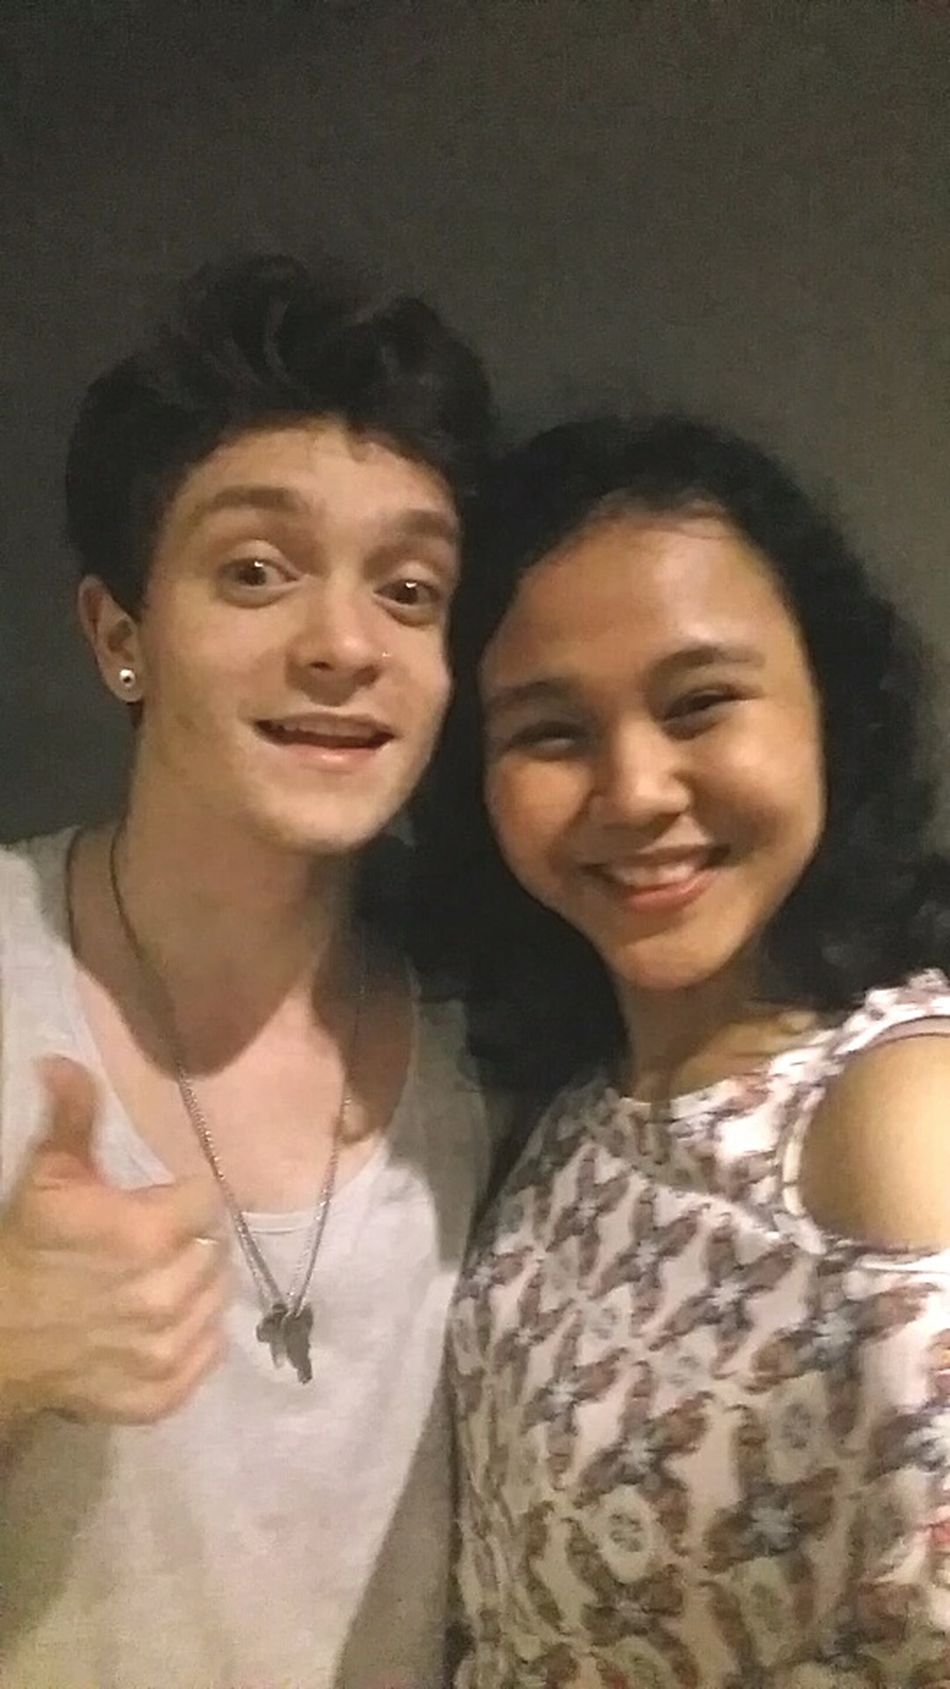 TheVampsBand Connorball MeetAndGreet connor is the best 💕